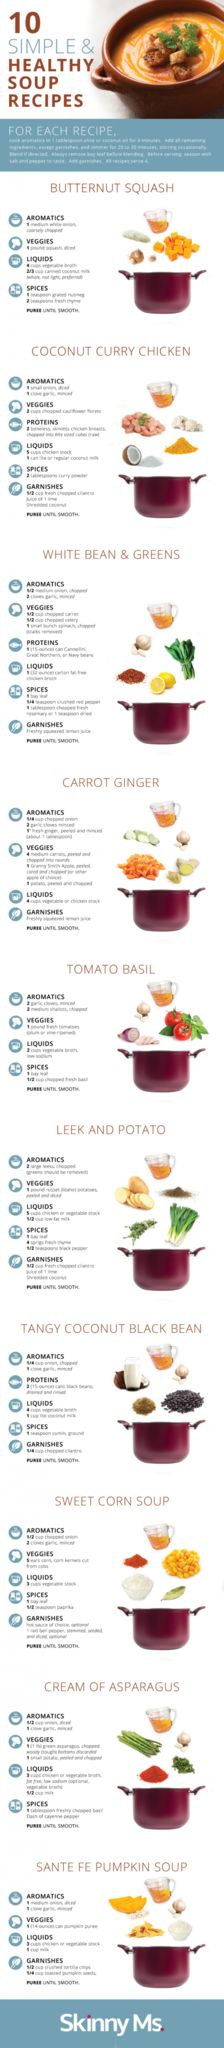 This easy to follow infographic has 10 Simple and Healthy Soup Recipes for any occasion!